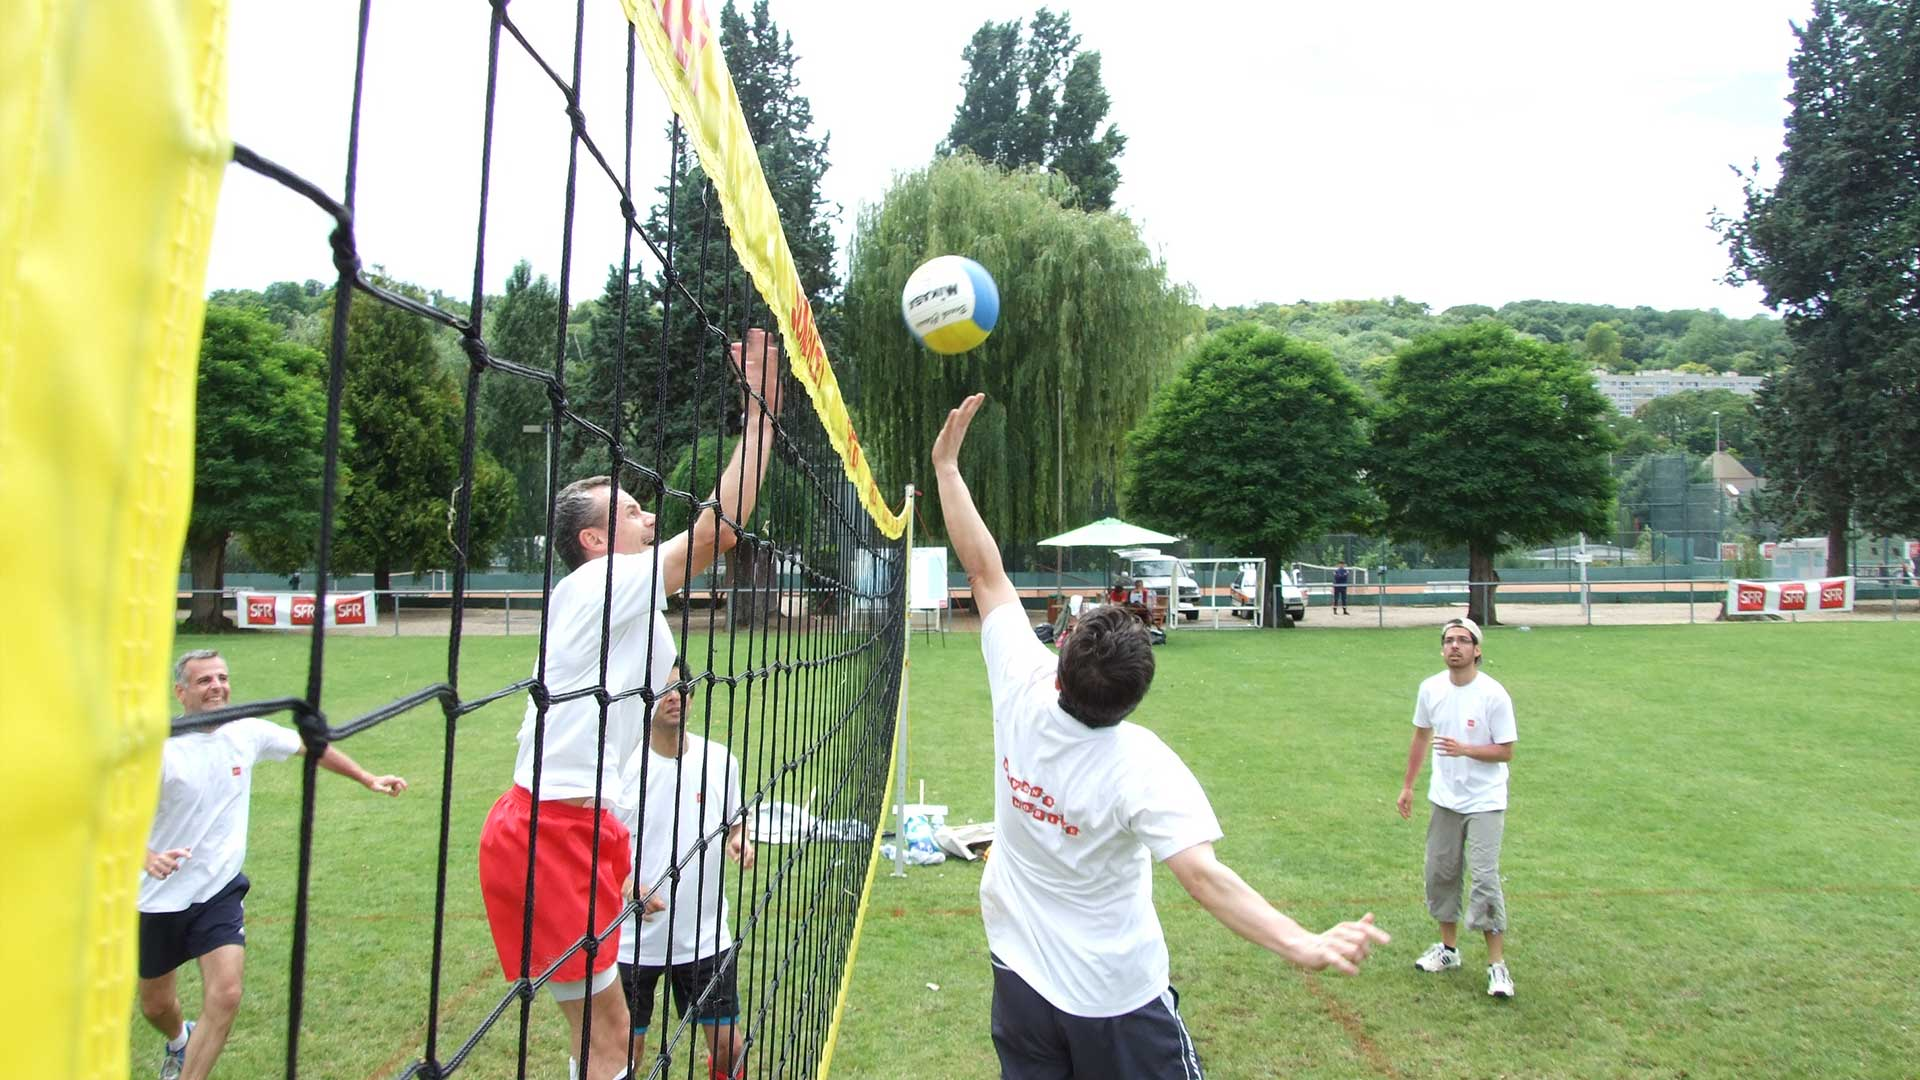 Challenge multi-sports entreprise volley-ball